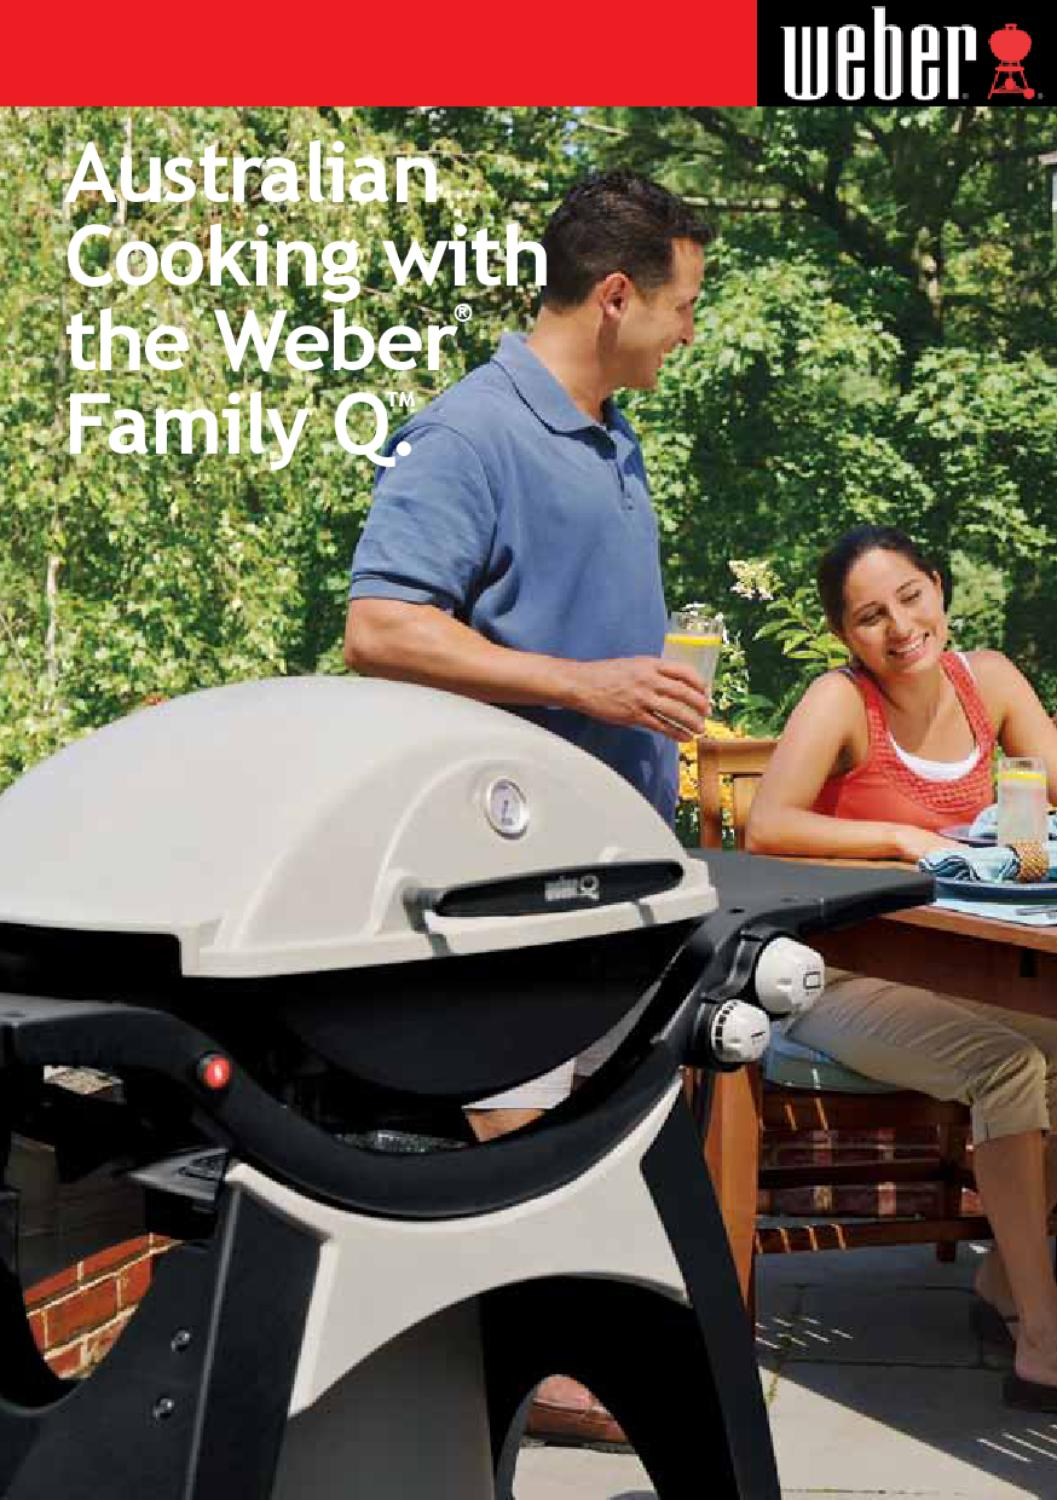 Australian Cooking With The Weber Family Q By R Mcdonald Issuu Trivet Barbeque